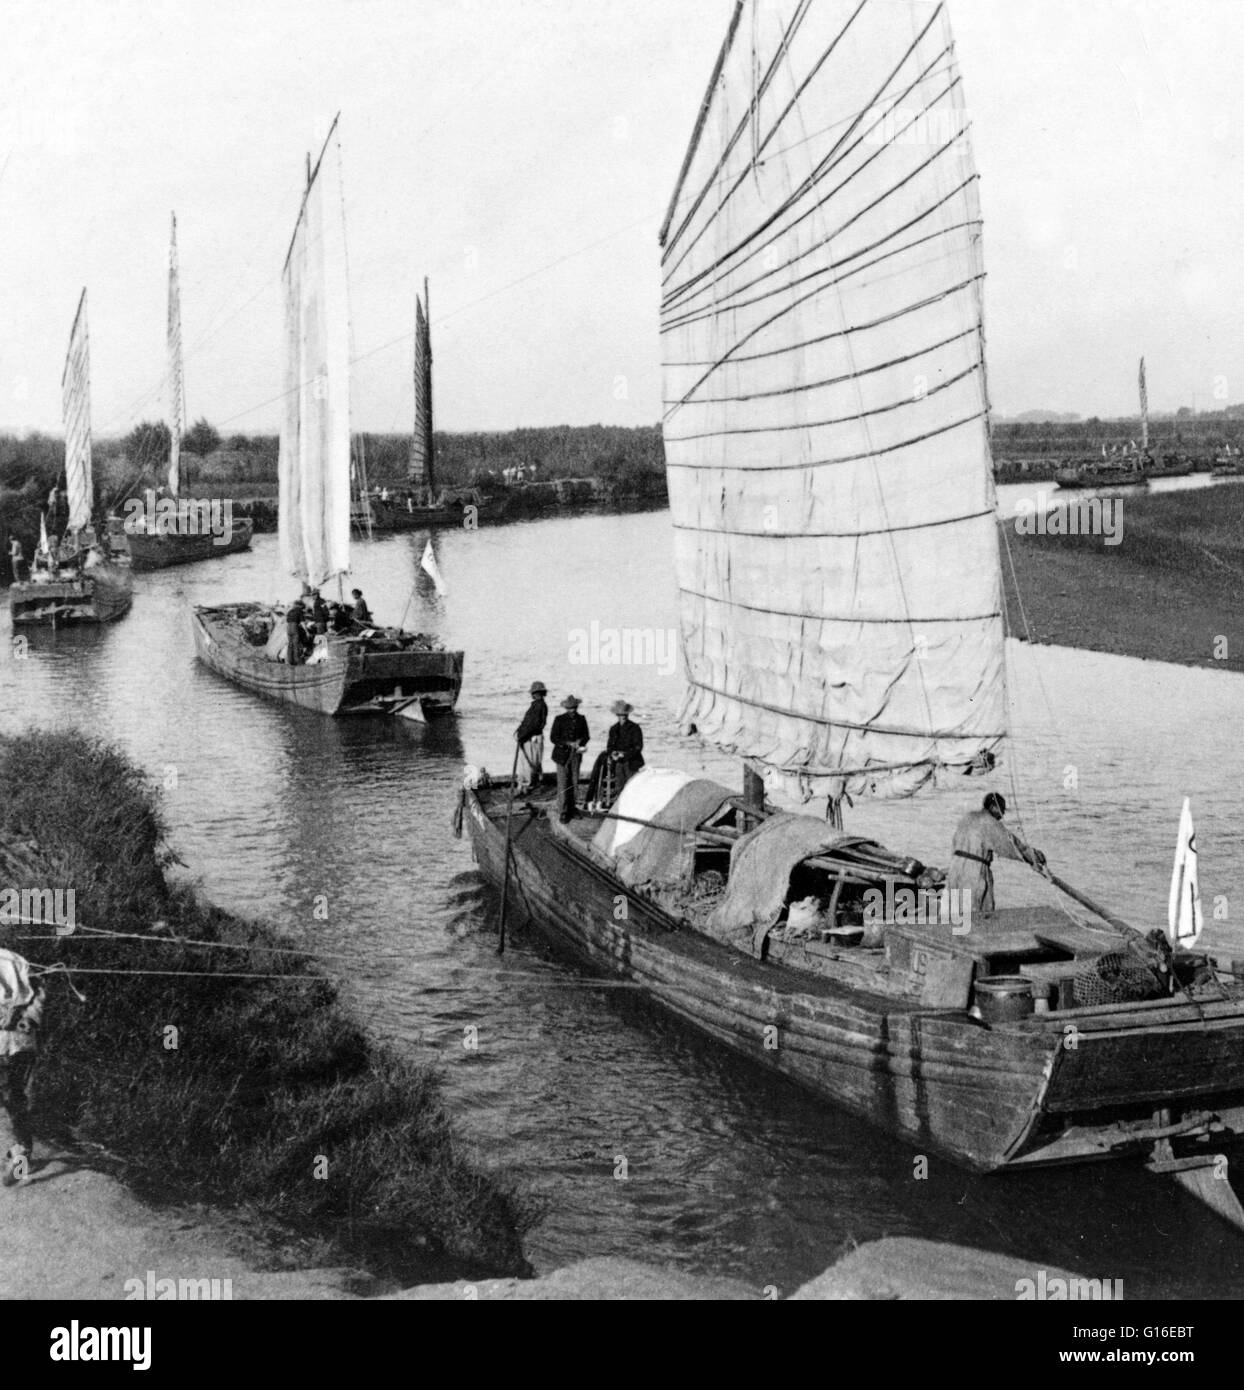 Entitled: 'Junk flotilla on the Peiho River - transporting U.S. Army stores from Tientsin to Peking, China.' - Stock Image